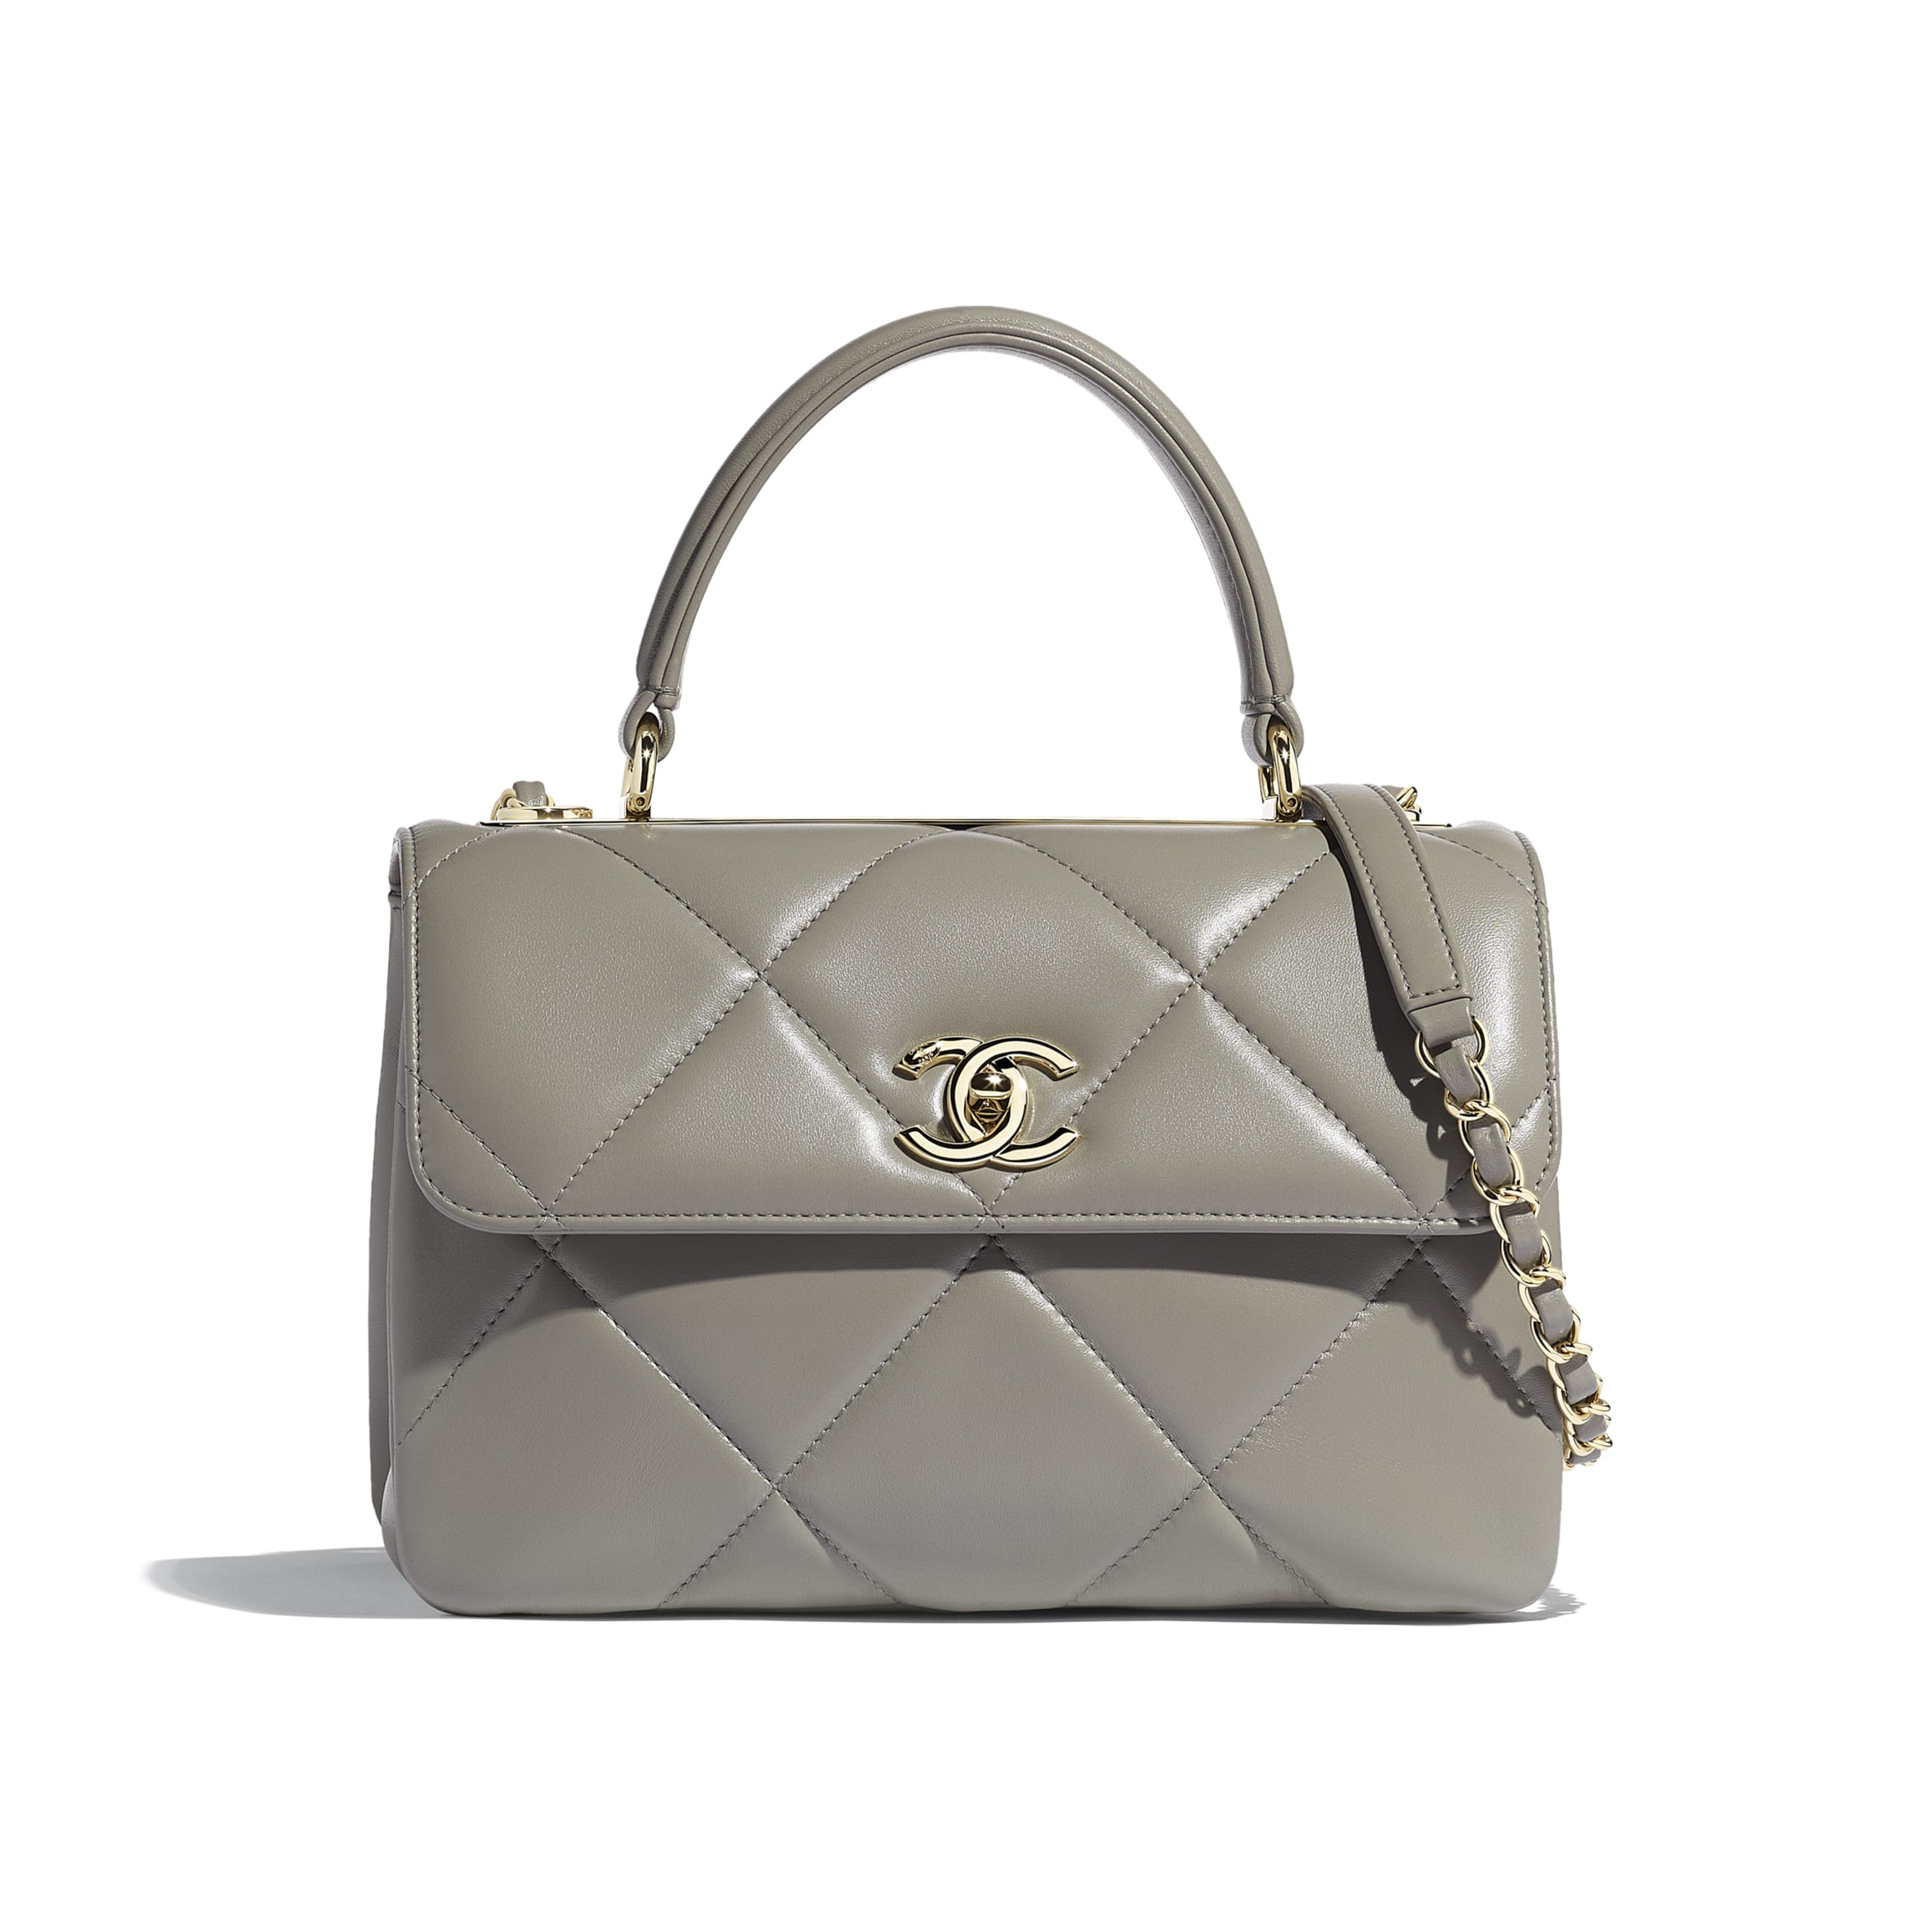 Small Flap Bag with Top Handle - Gray - Lambskin & Gold-Tone Metal - Default view - see standard sized version